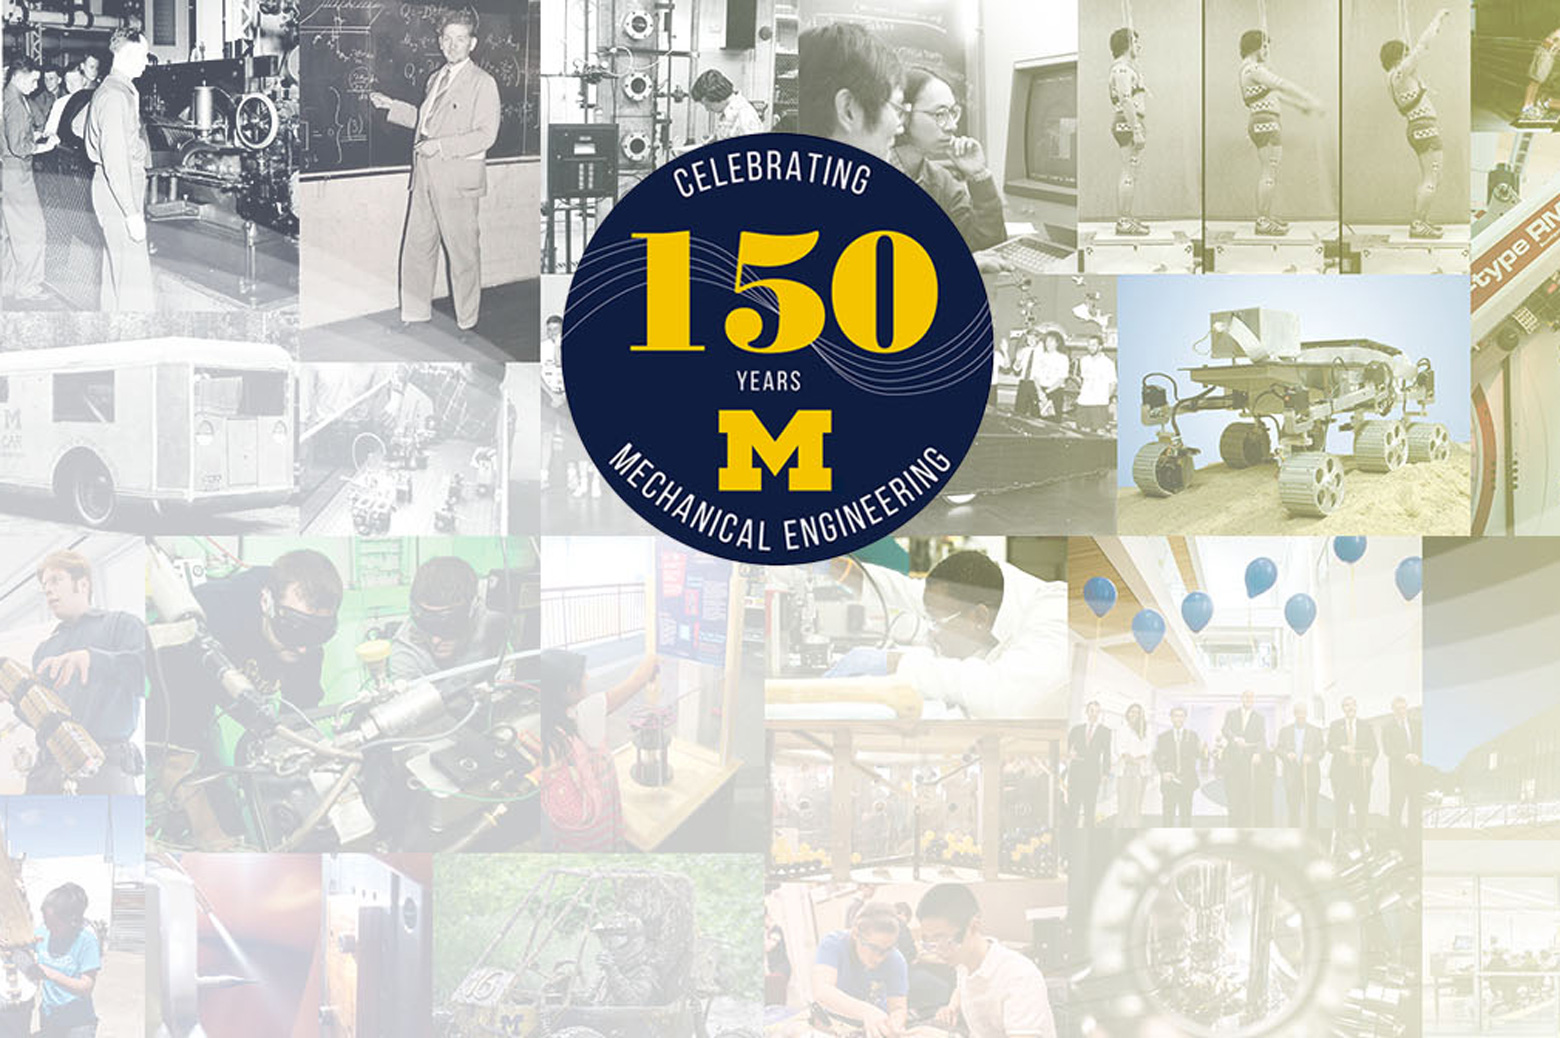 Mechanical Engineering celebrates its 150th year at U-M.